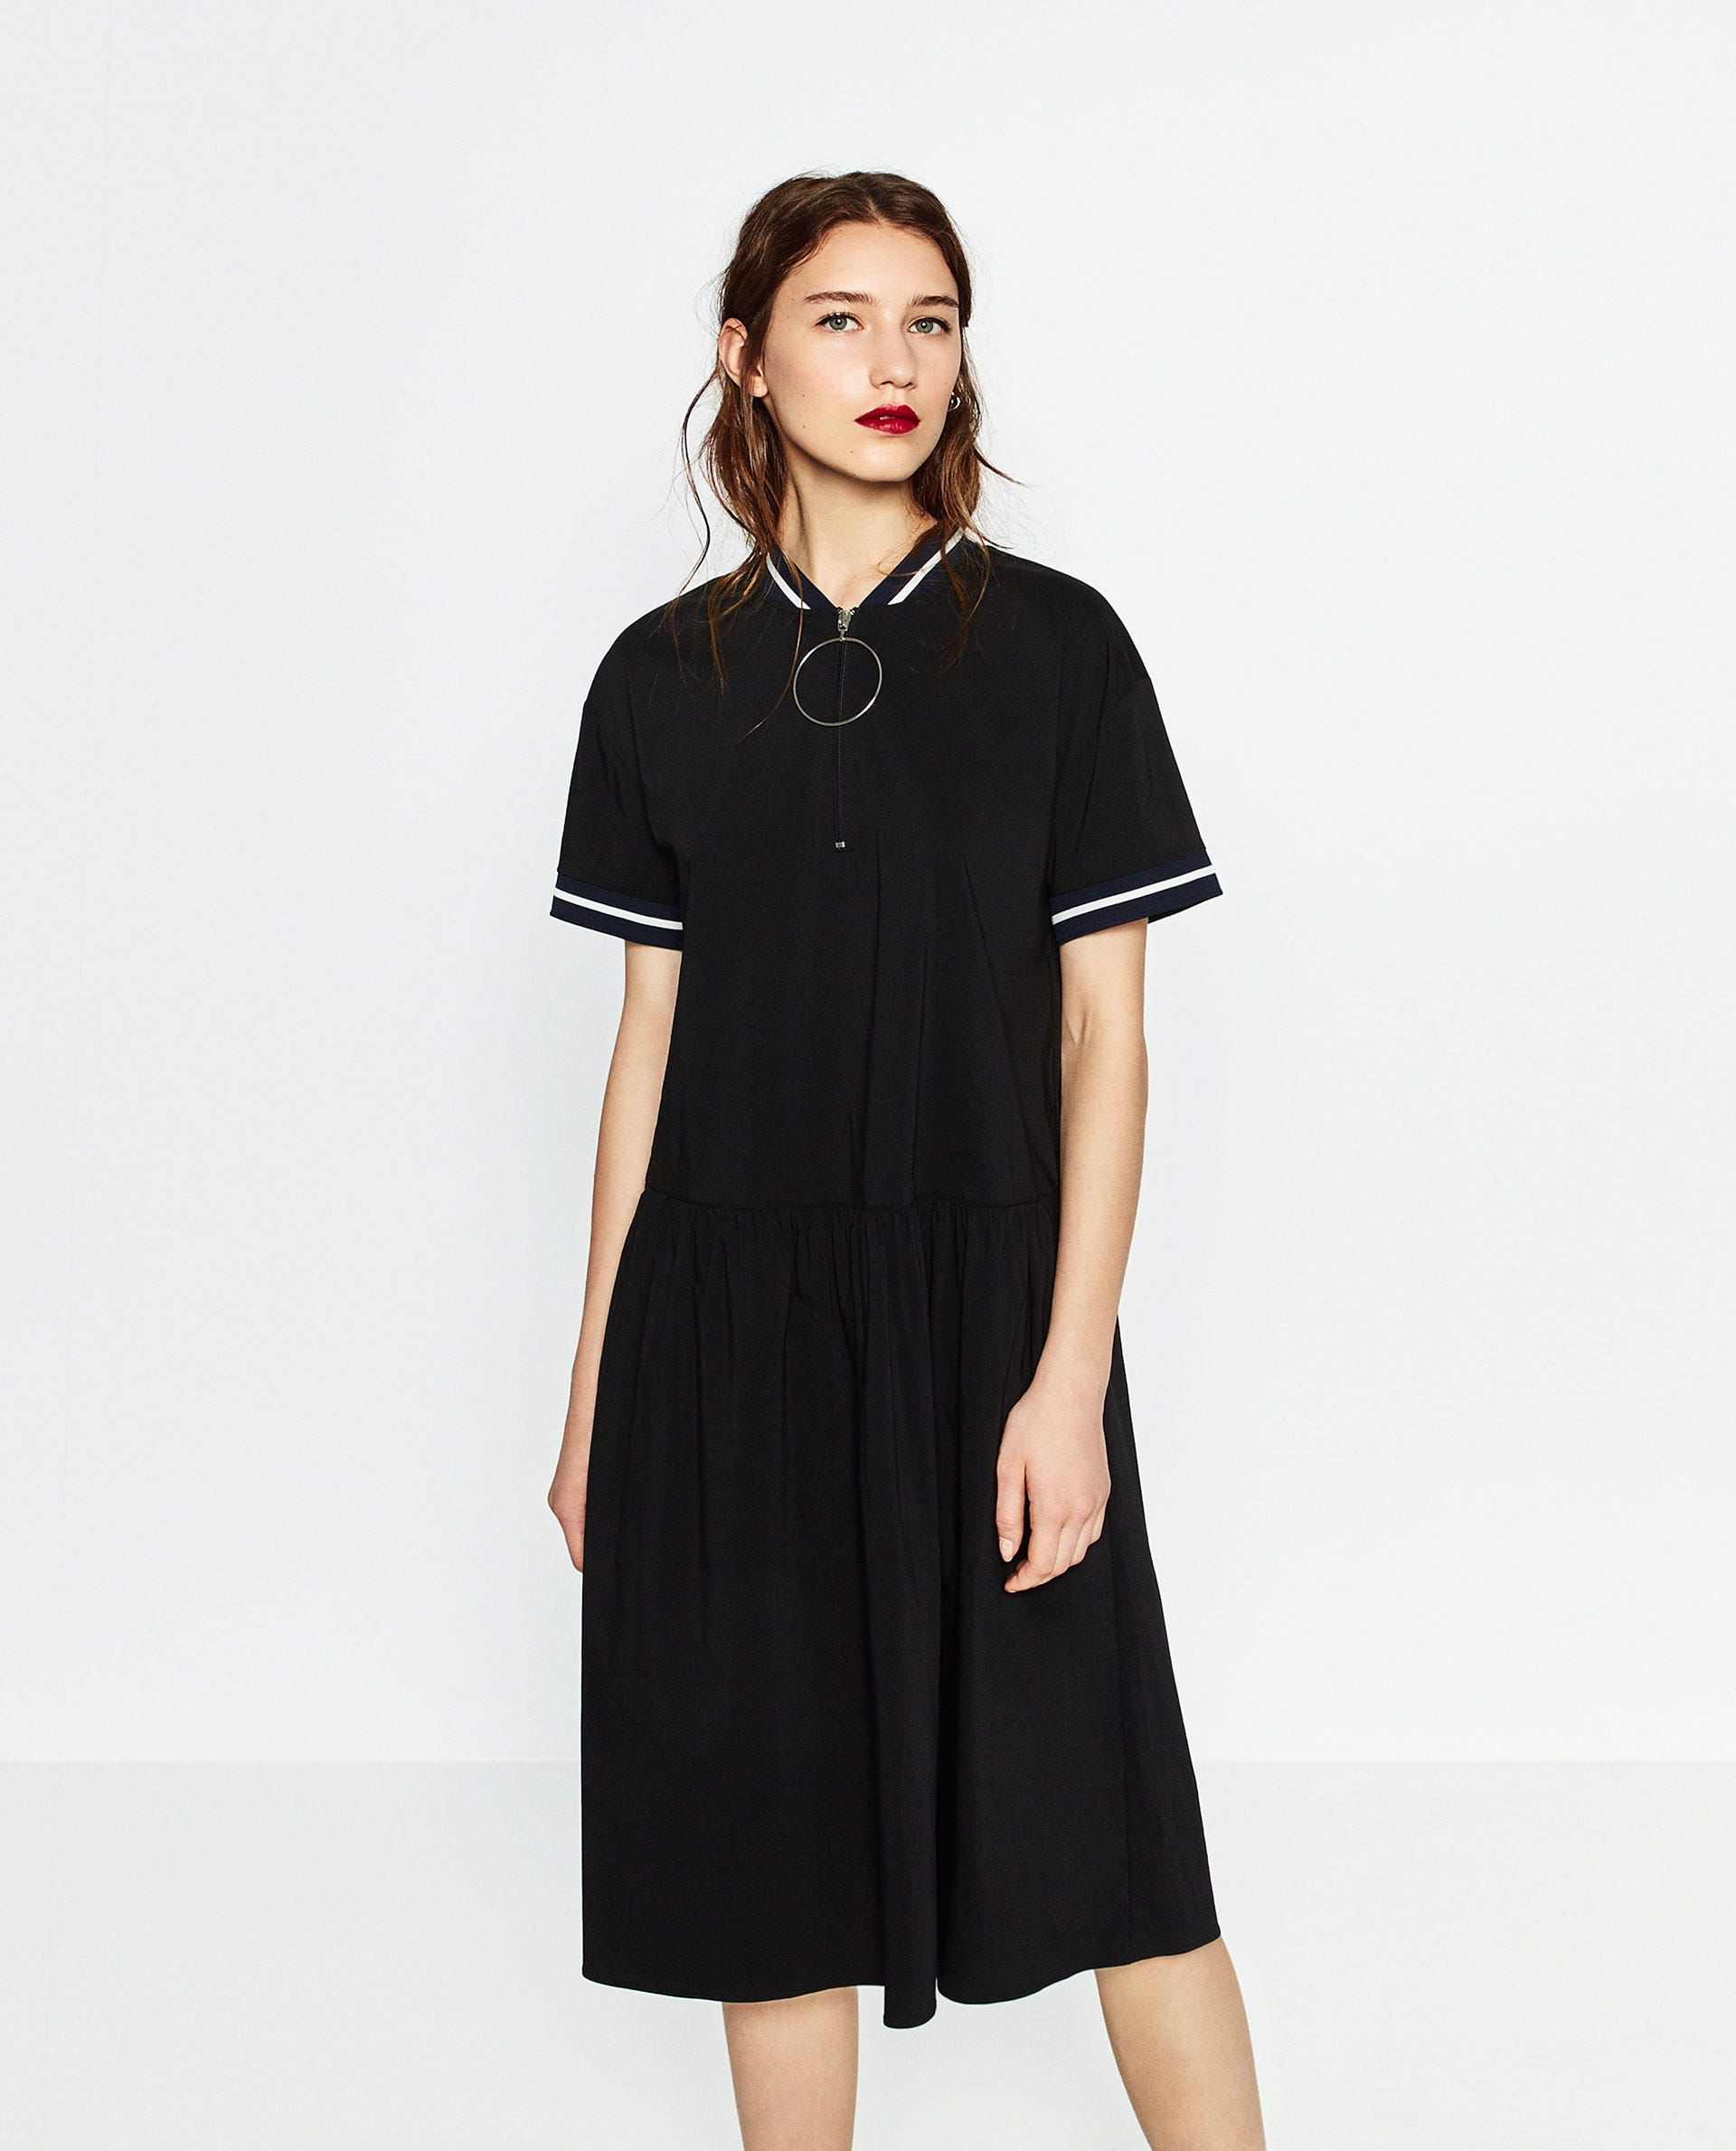 Zara Winter Sale 2016 - End Of Year Clothing Sale